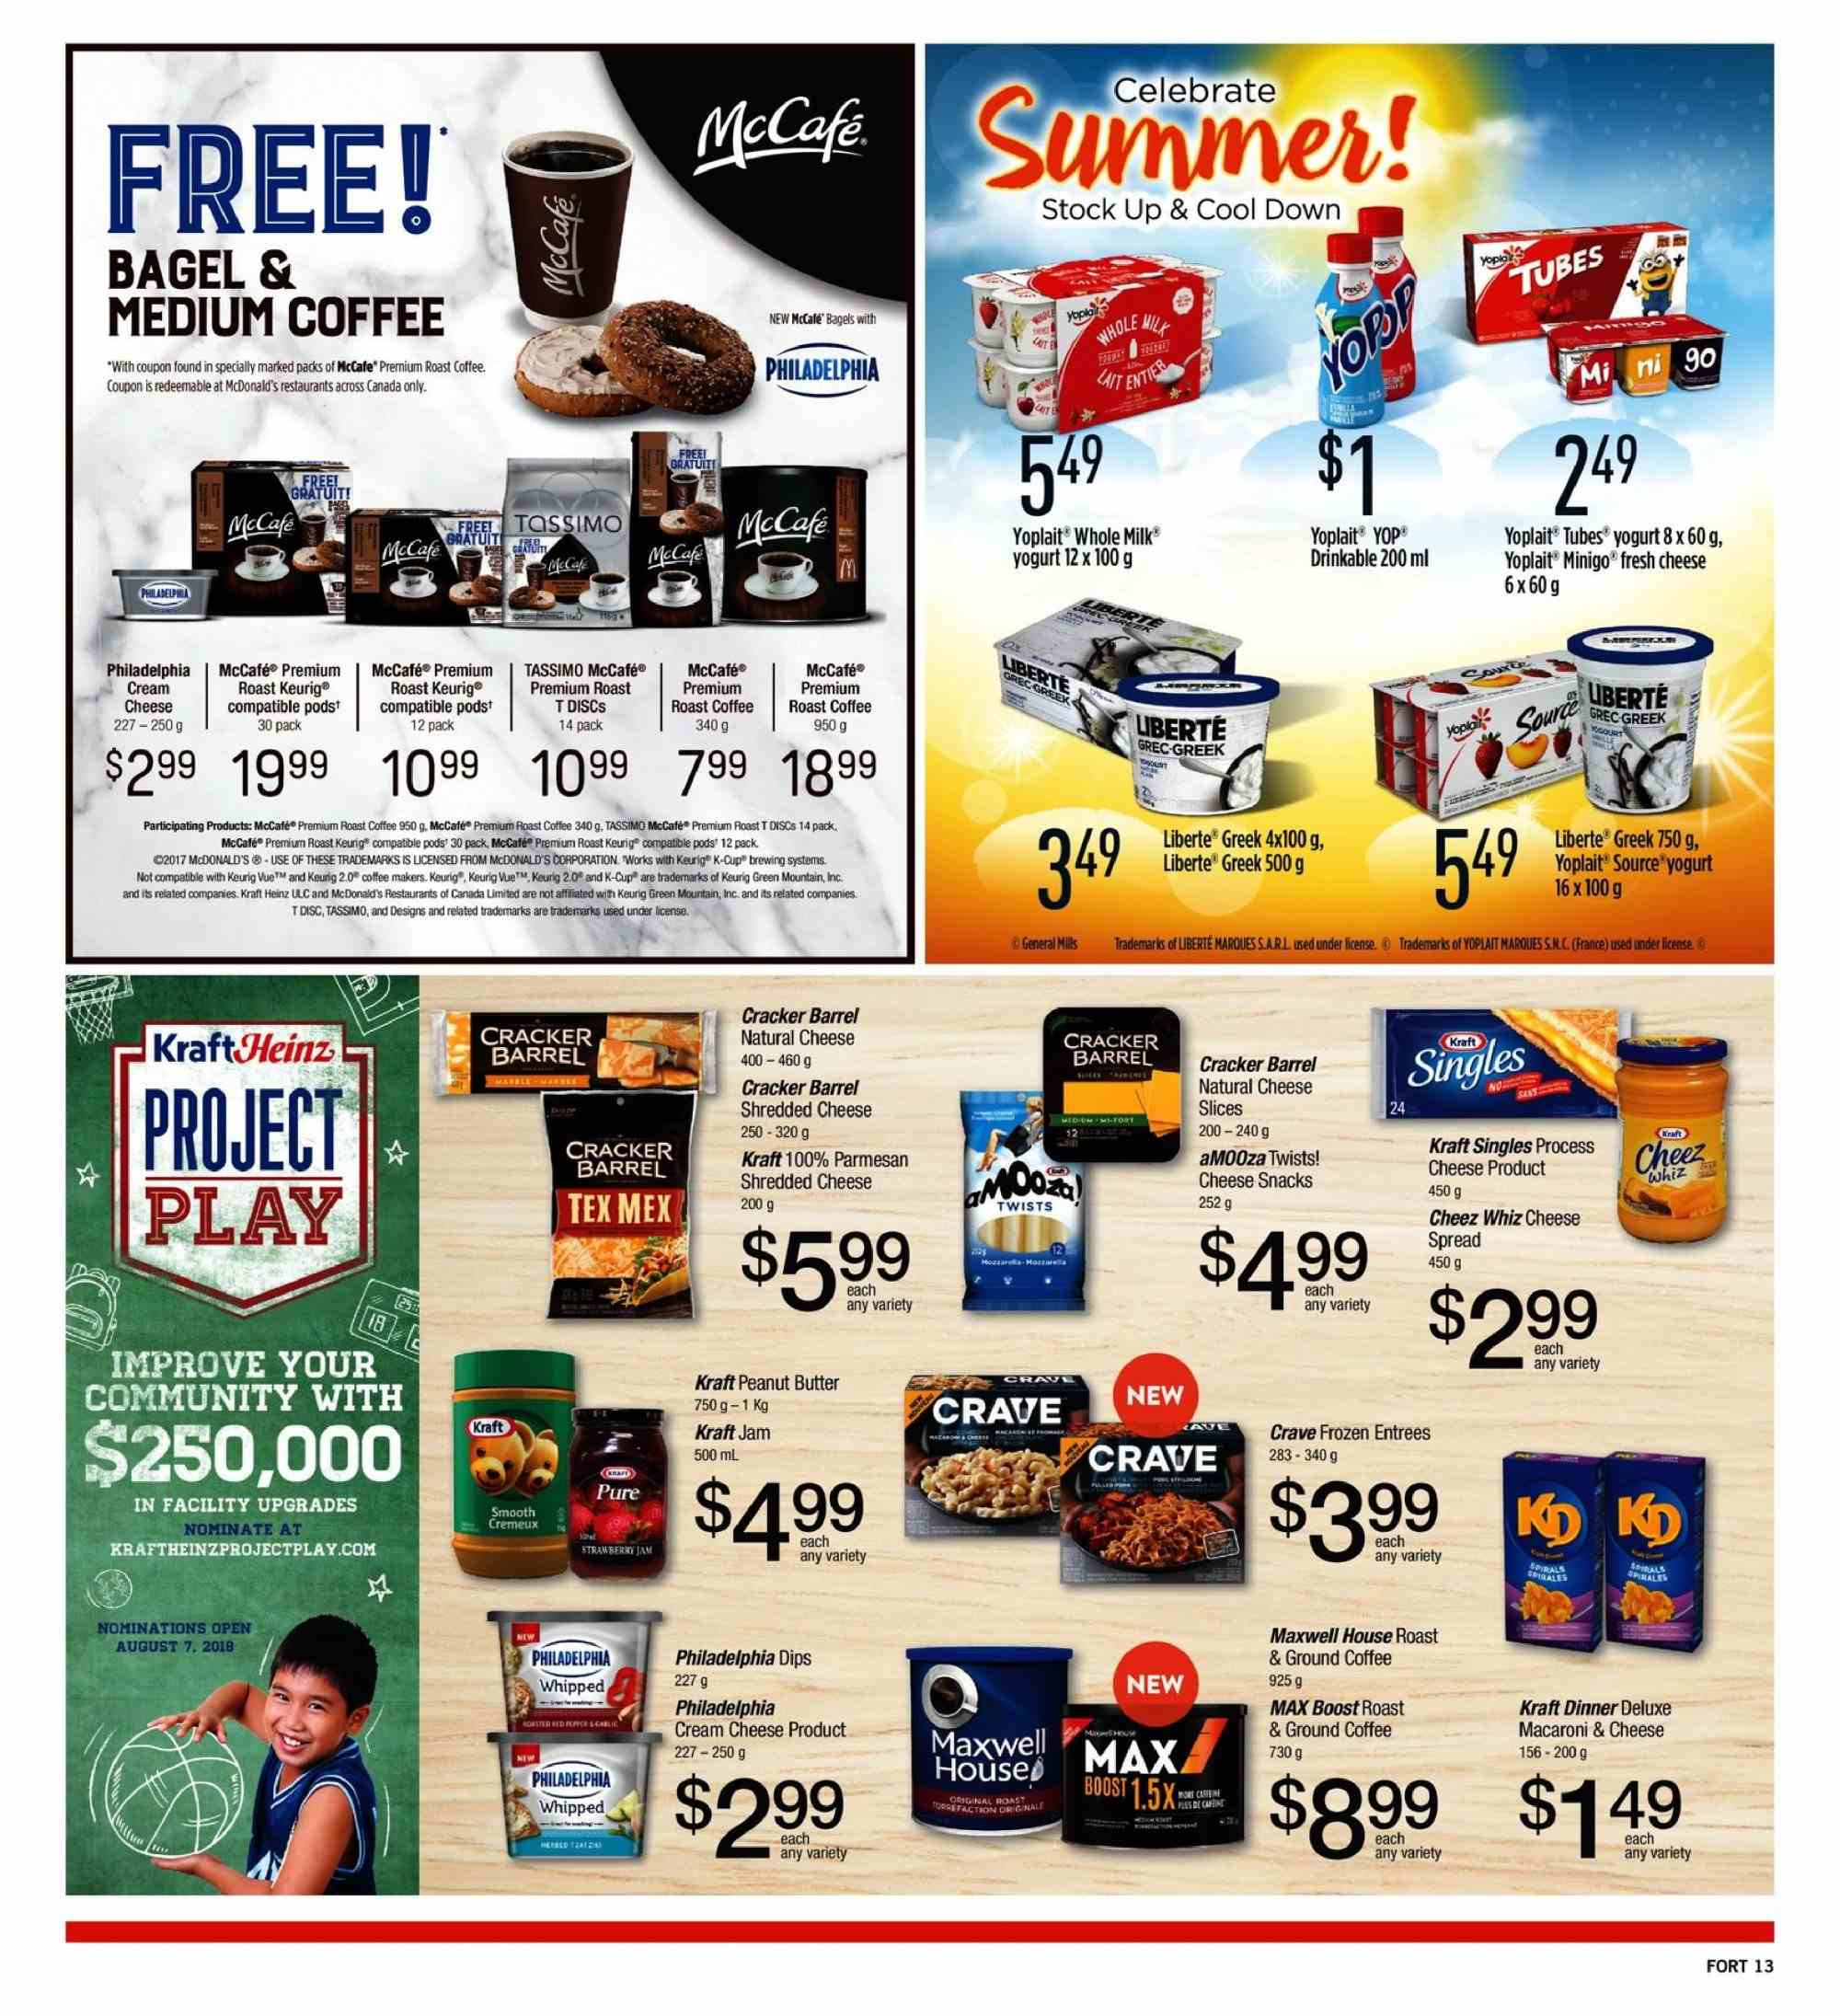 Fortinos Flyer  - July 26, 2018 - August 01, 2018. Page 13.